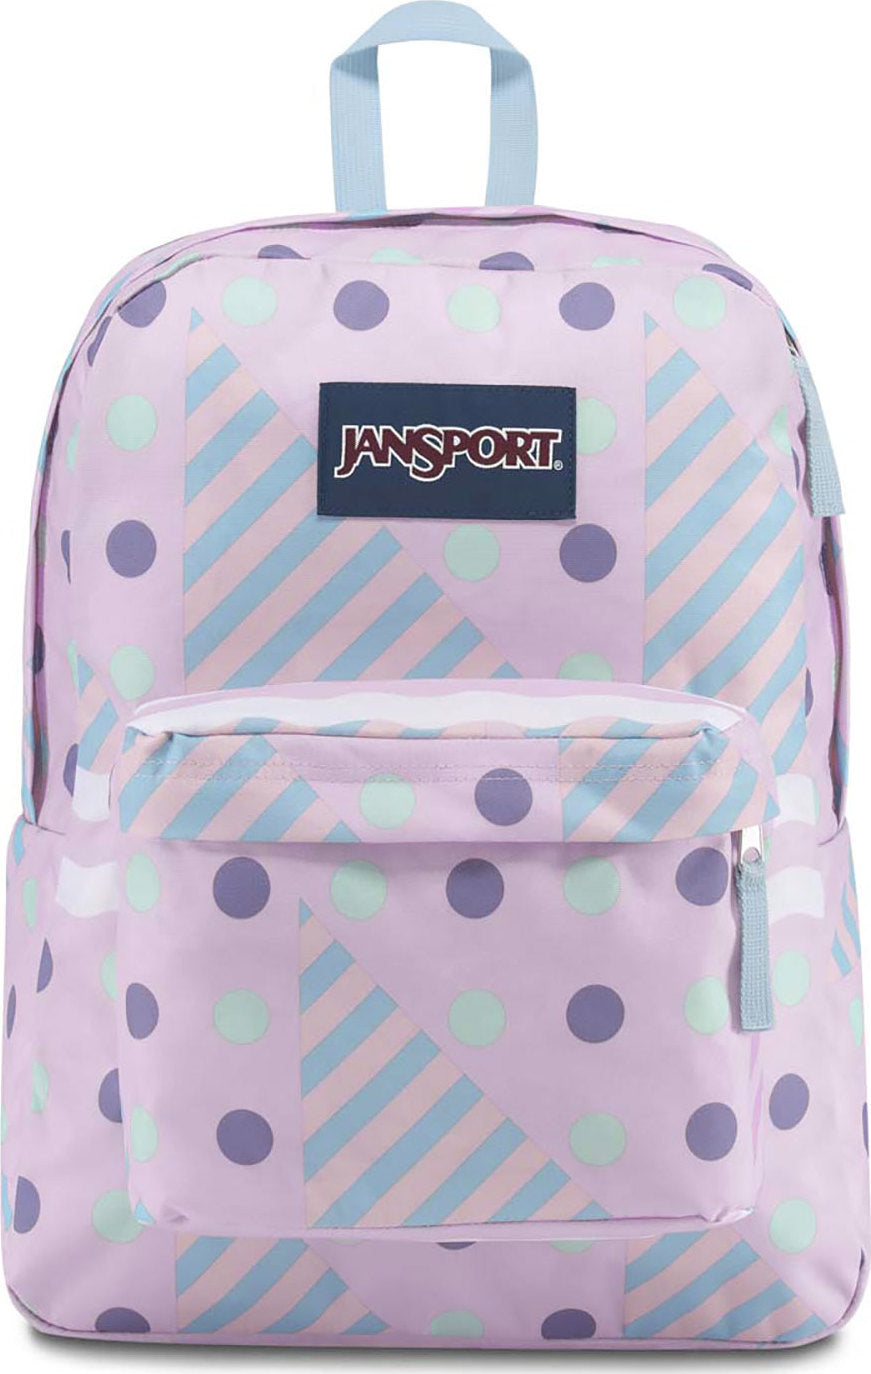 Jansport Backpack Warranty Canada | Fitzpatrick Painting